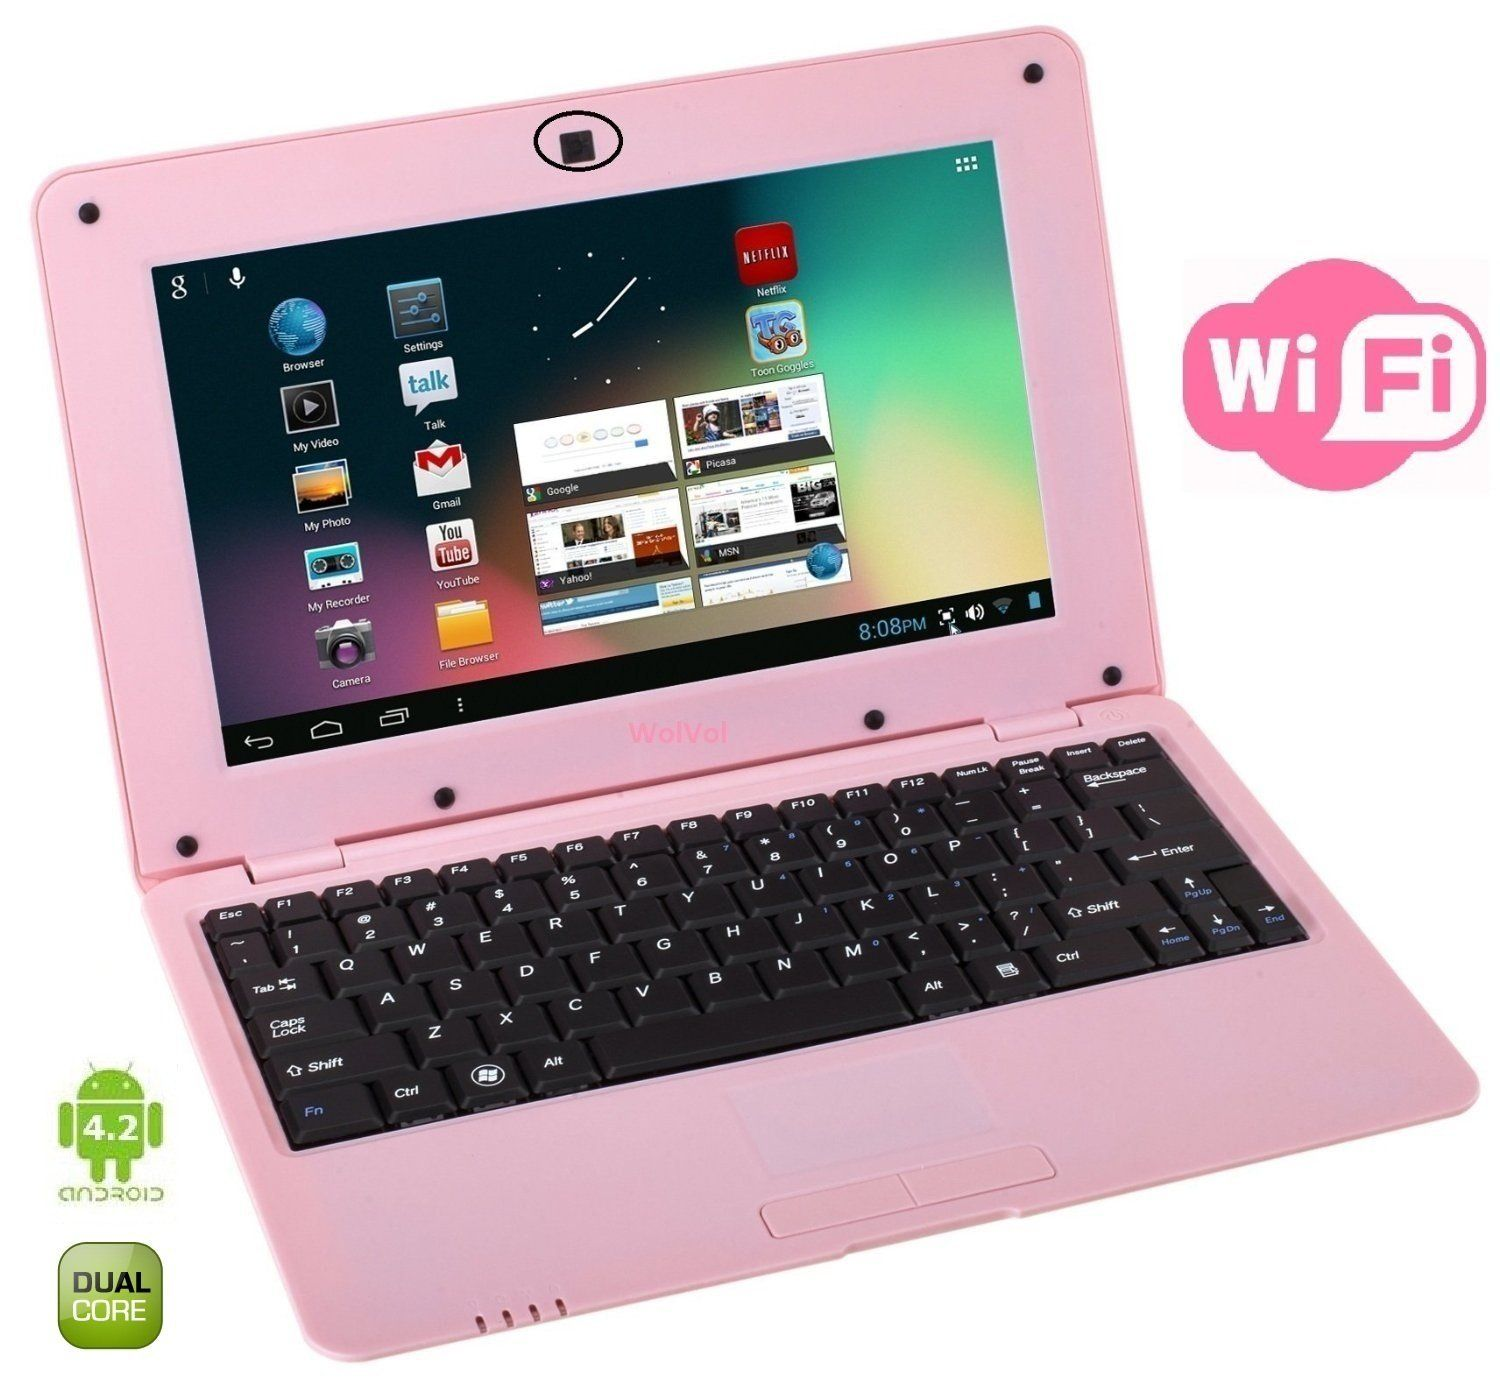 This WolVol 10 inch mini pink laptop includes the newest upgrade